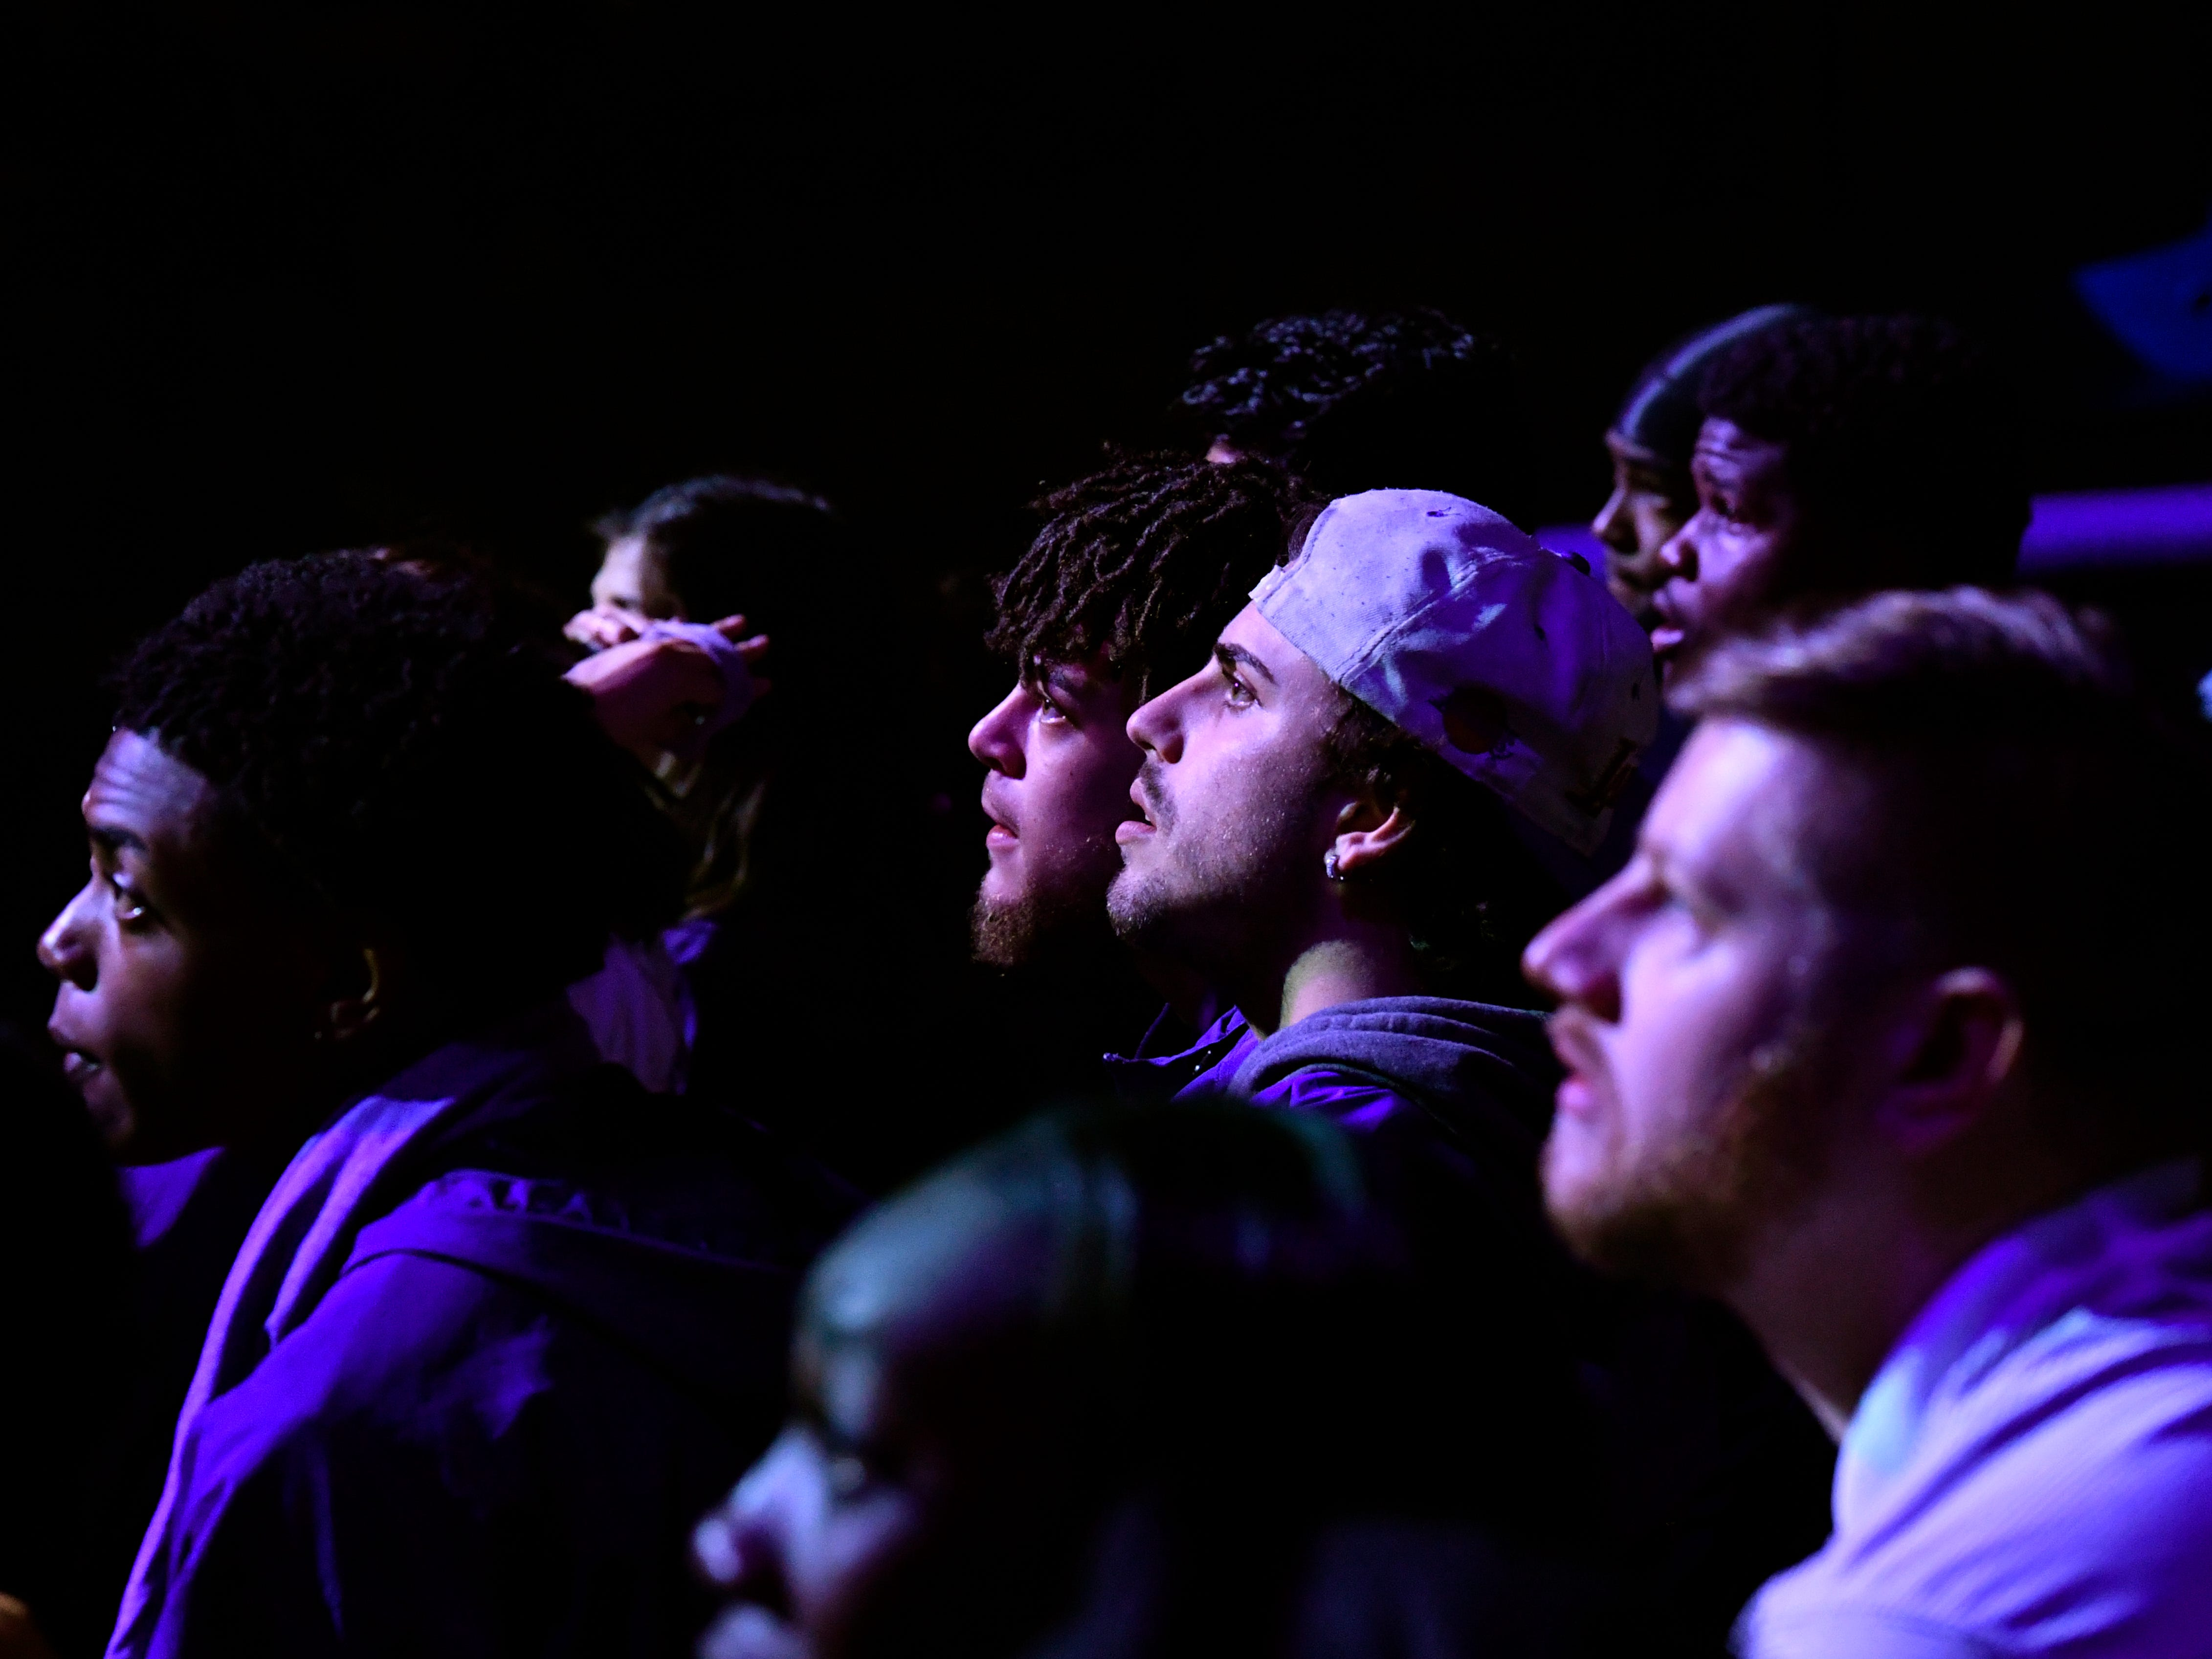 Fans watch the game between Abilene Christian University and the University of Kentucky during a watch party at Moody Coliseum Thursday March, 21, 2019. The game in Florida was ACU's first trip to the NCAA Tournament. Final score was 79-44, Kentucky.